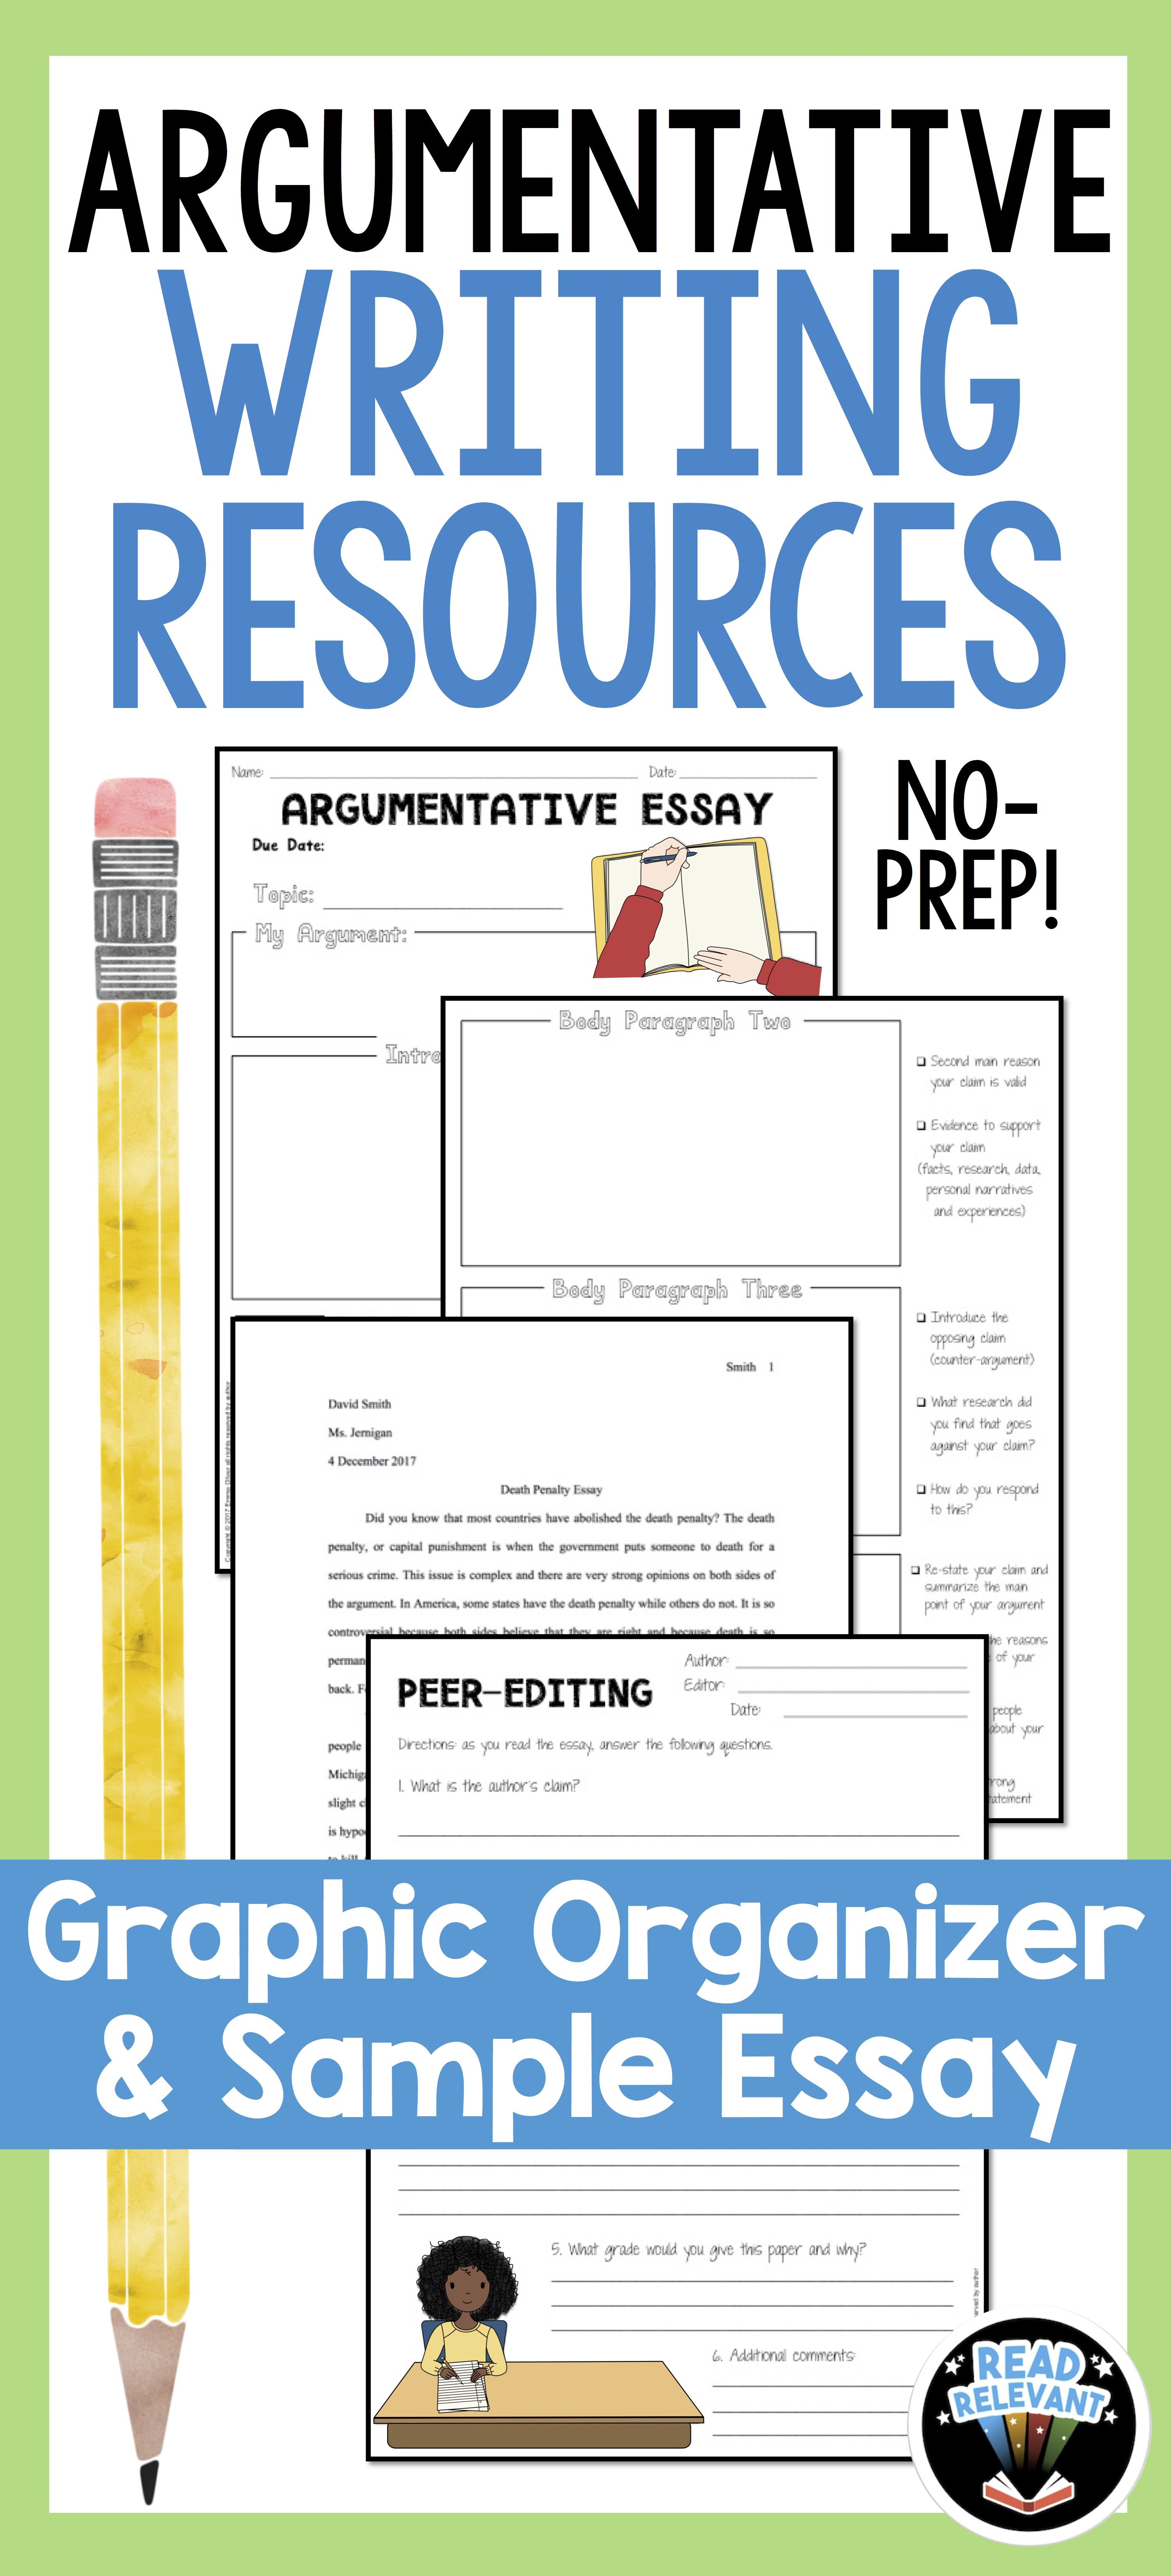 Thesis Statement For Comparison Essay Scaffolded Resources For Teaching Argumentative Or Persuasive Writing This  Graphic Organizer Will Help Students Prepare A Five Paragraph Essay Proposal For An Essay also Argumentative Essay Sample High School Scaffolded Resources For Teaching Argumentative Or Persuasive  Topics For Synthesis Essay